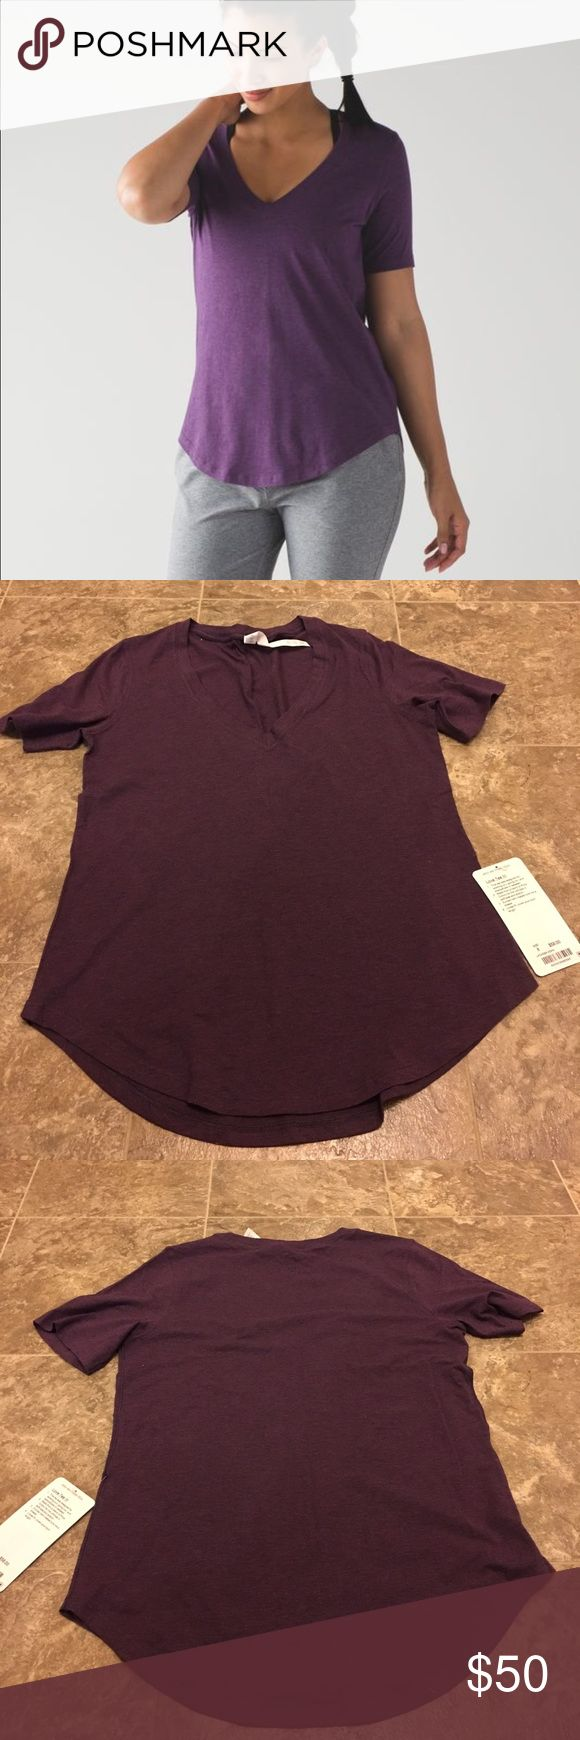 Lululemon Love Tee Heathered Magenta size 8 V neck. COLOR CODE IS HEATHERED DARKEST MAGENTA. color most accurate to stock photo. No trades. PRICE FIRM. V neck lululemon athletica Tops Tees - Short Sleeve